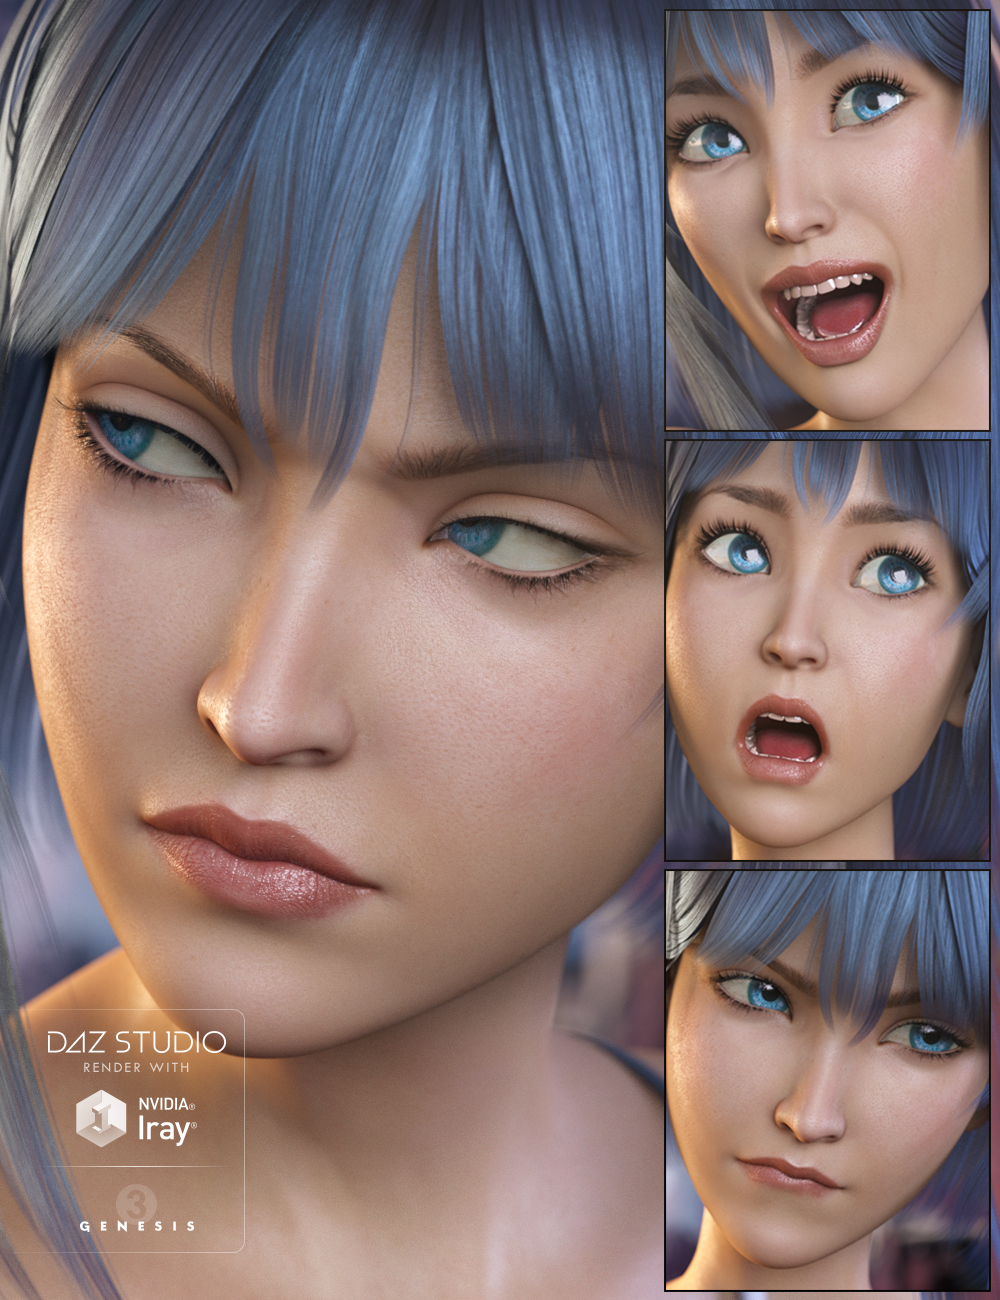 Aiko 7 Expressive by: Neikdian, 3D Models by Daz 3D